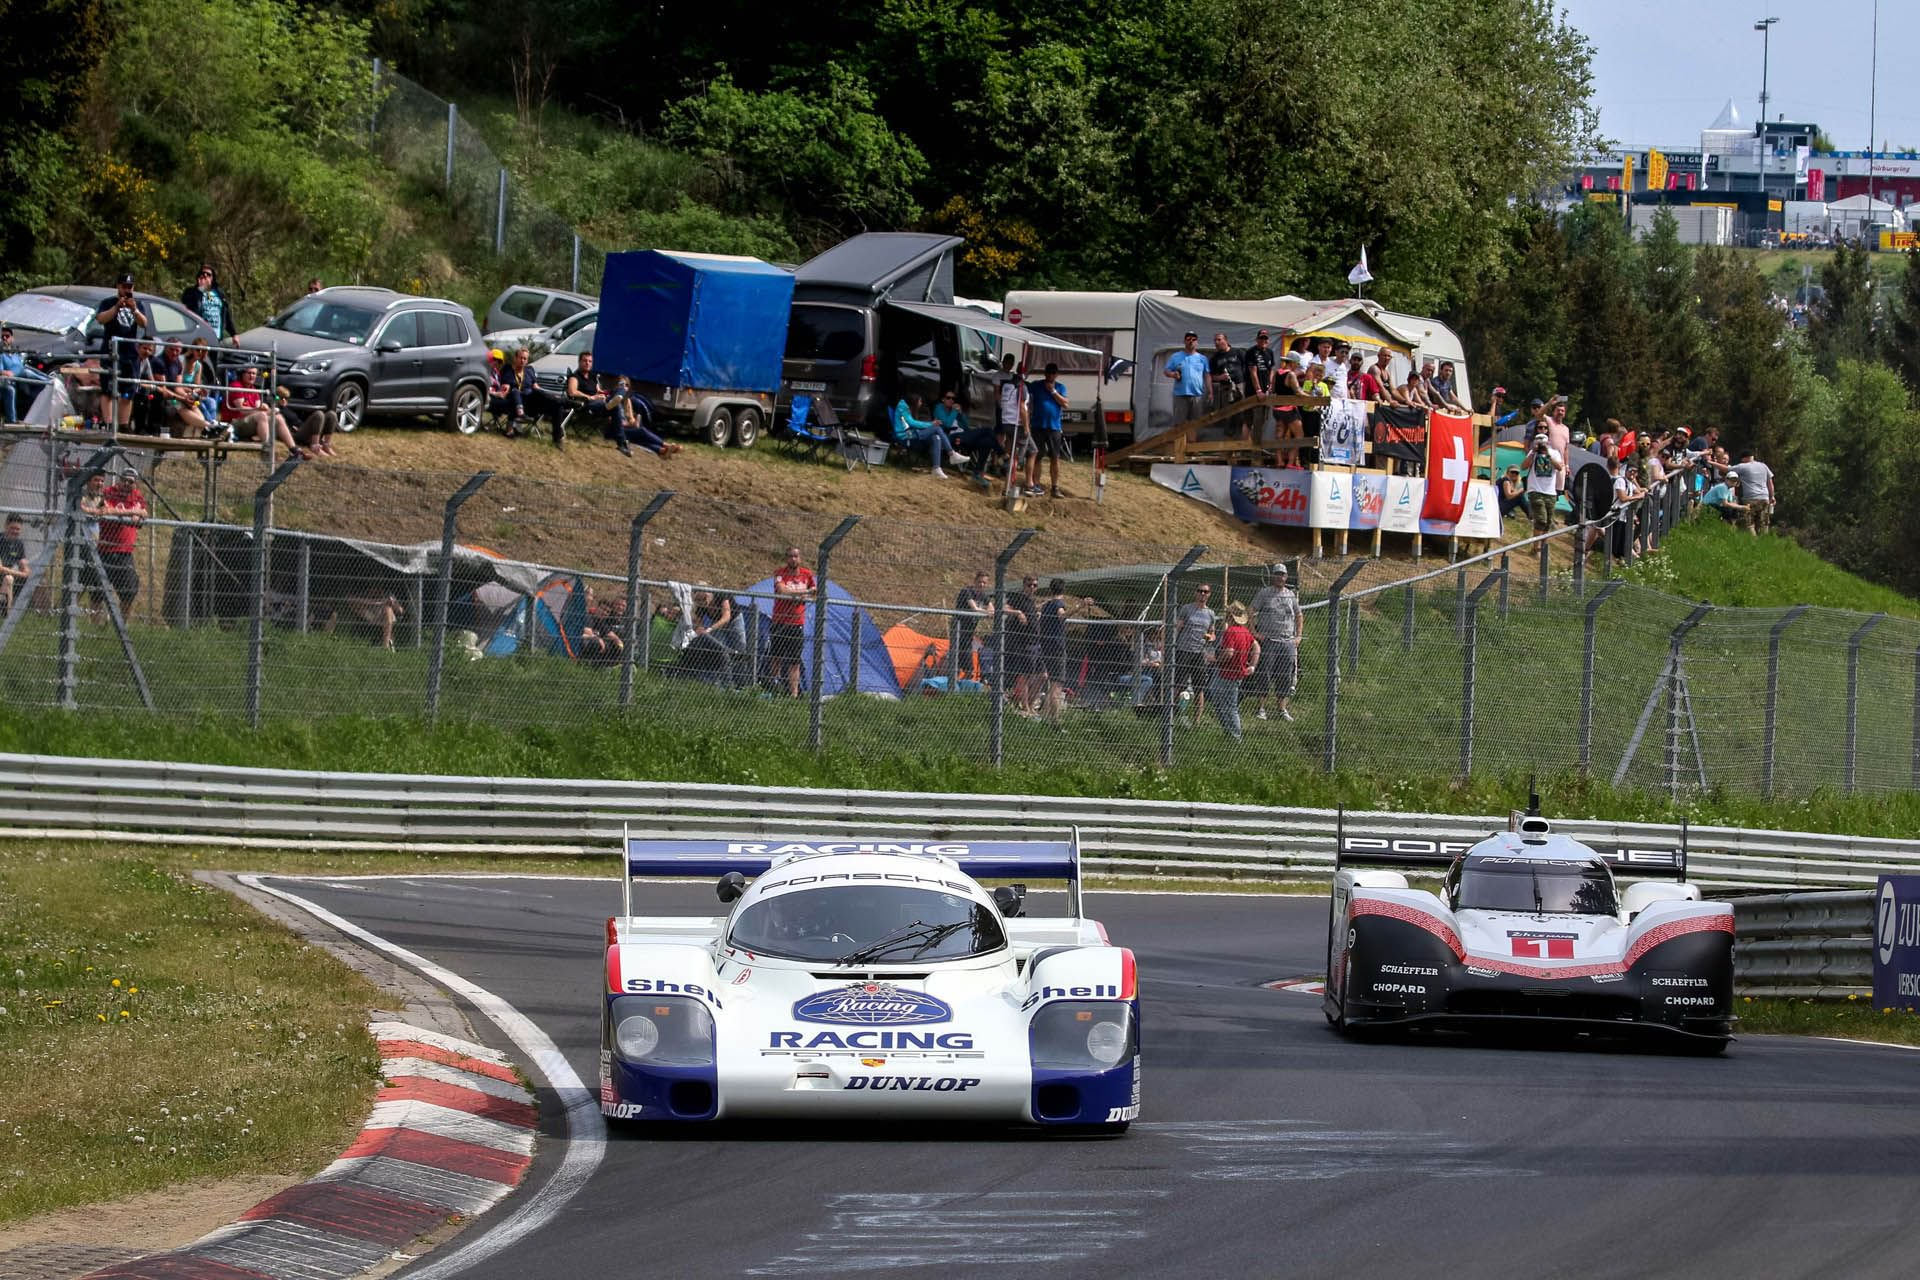 Porsche 919 Hybrid Evo and 956 at Nurburgring (9)